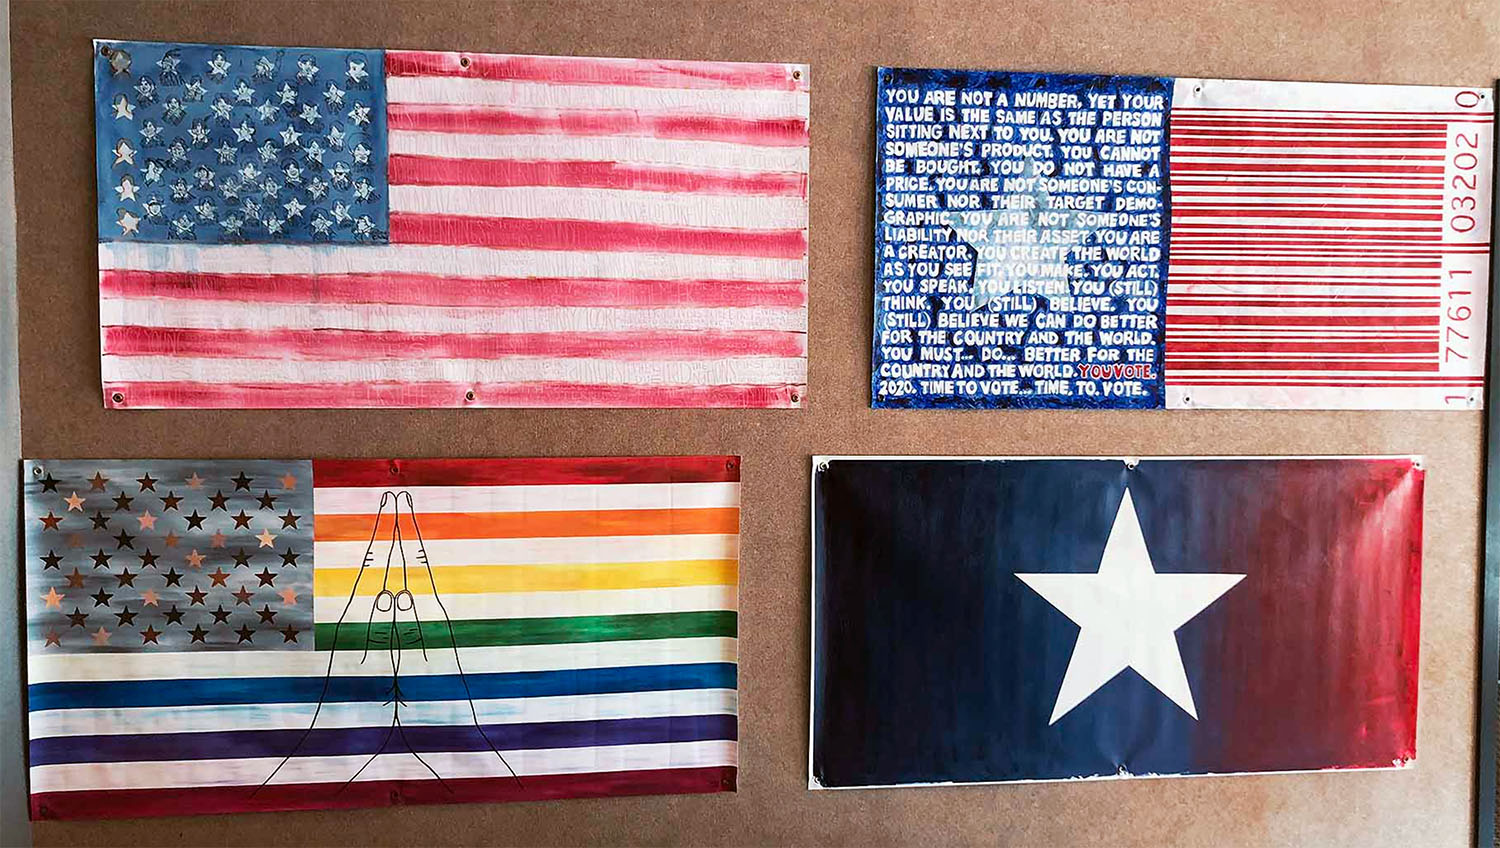 Artists from more than 30 states were selected to participate in the Unity Flag Project. Their works are currently on display in the Leu Center for the Visual Arts at Belmont University in Nashville. (Belmont University)